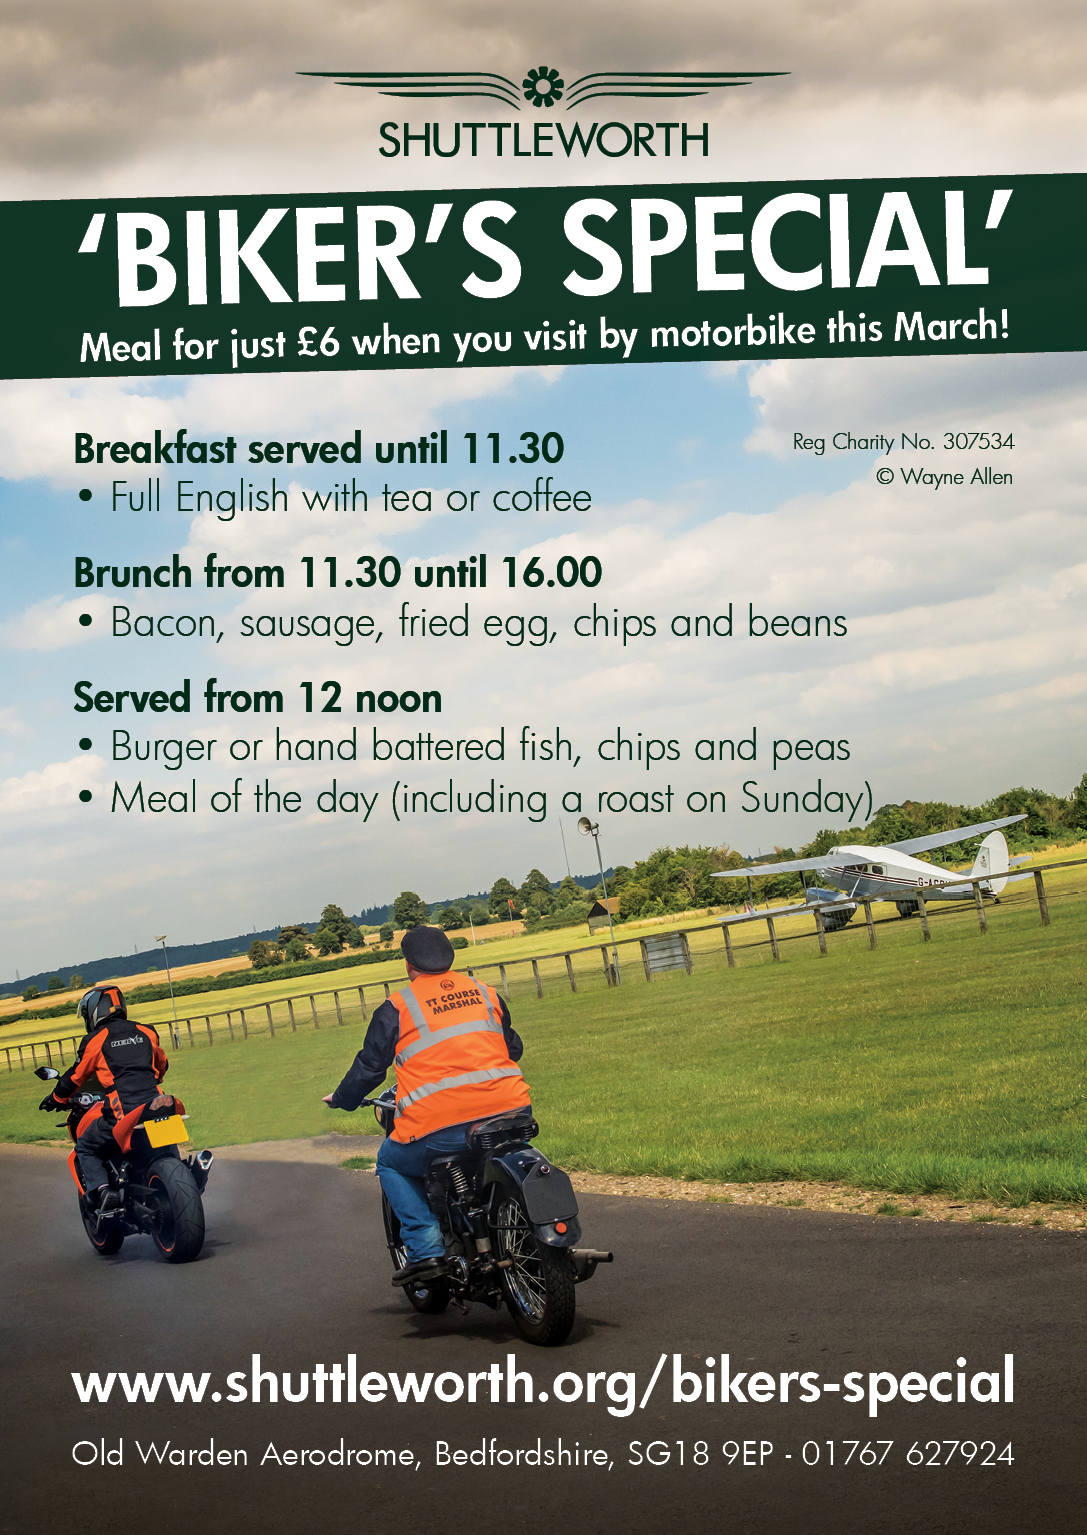 Bikers special, Shuttleworth Collection, March 2017